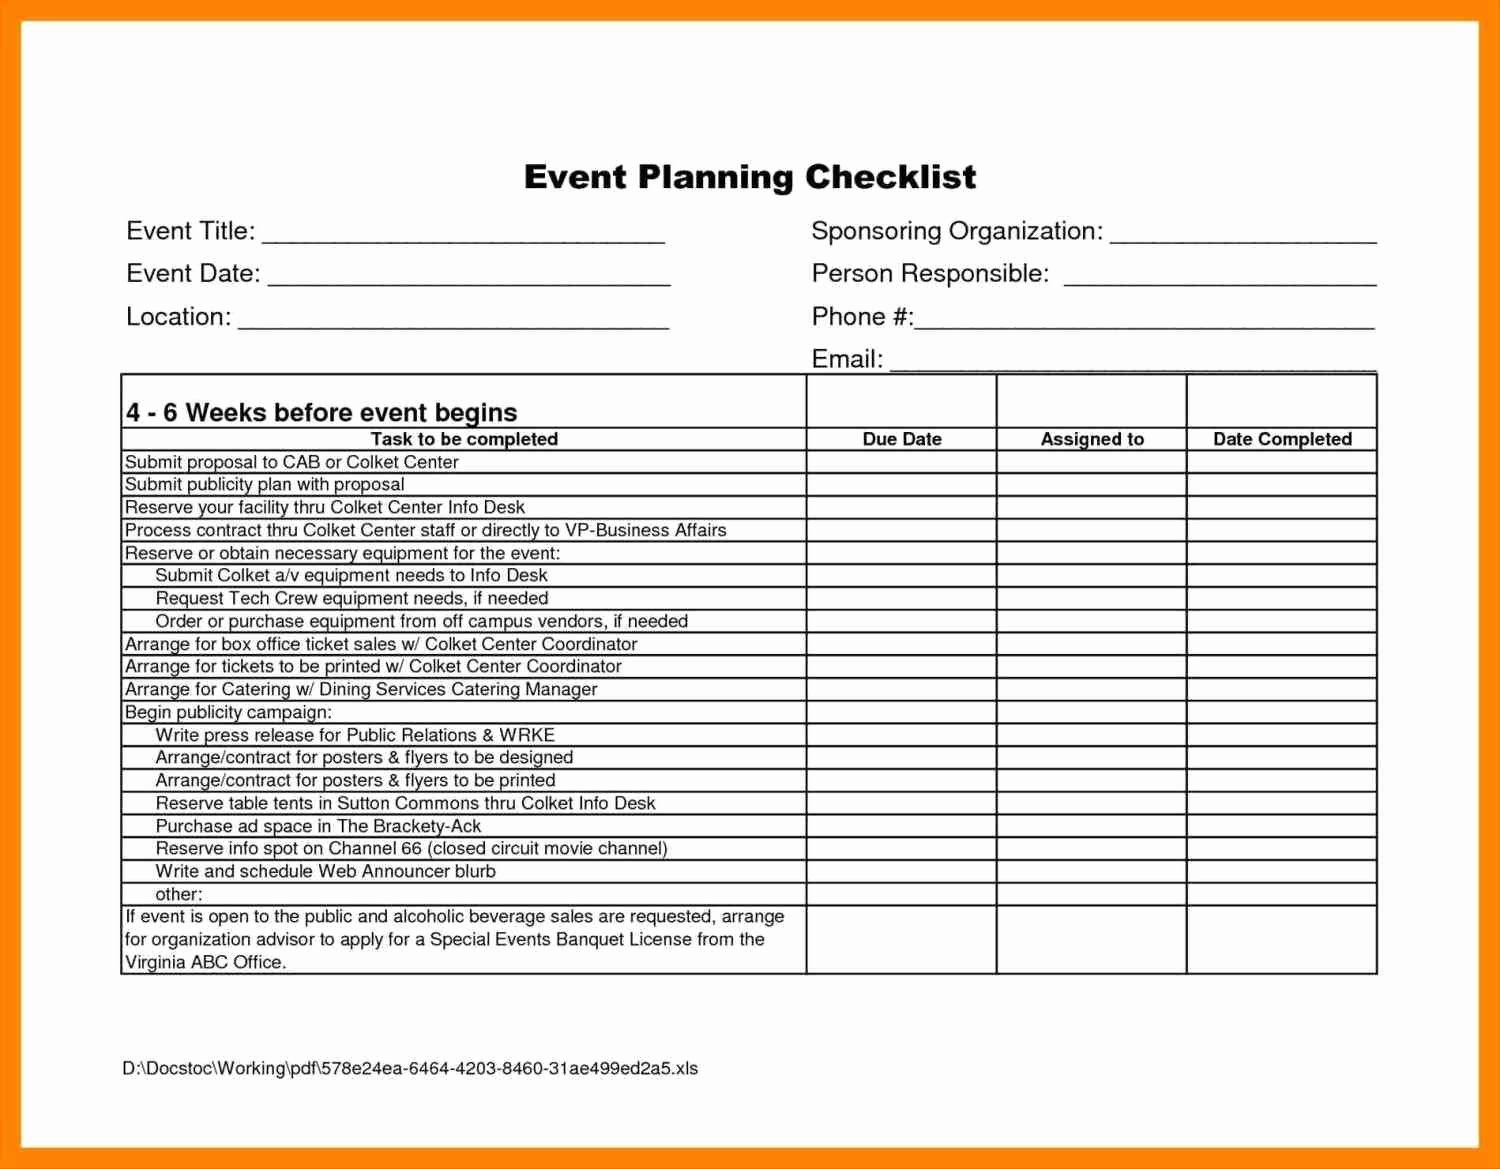 Event Planning Checklist Template Beautiful Conference Planning Checklist Editable In Excel Sampletemplatez Sampletemplatez